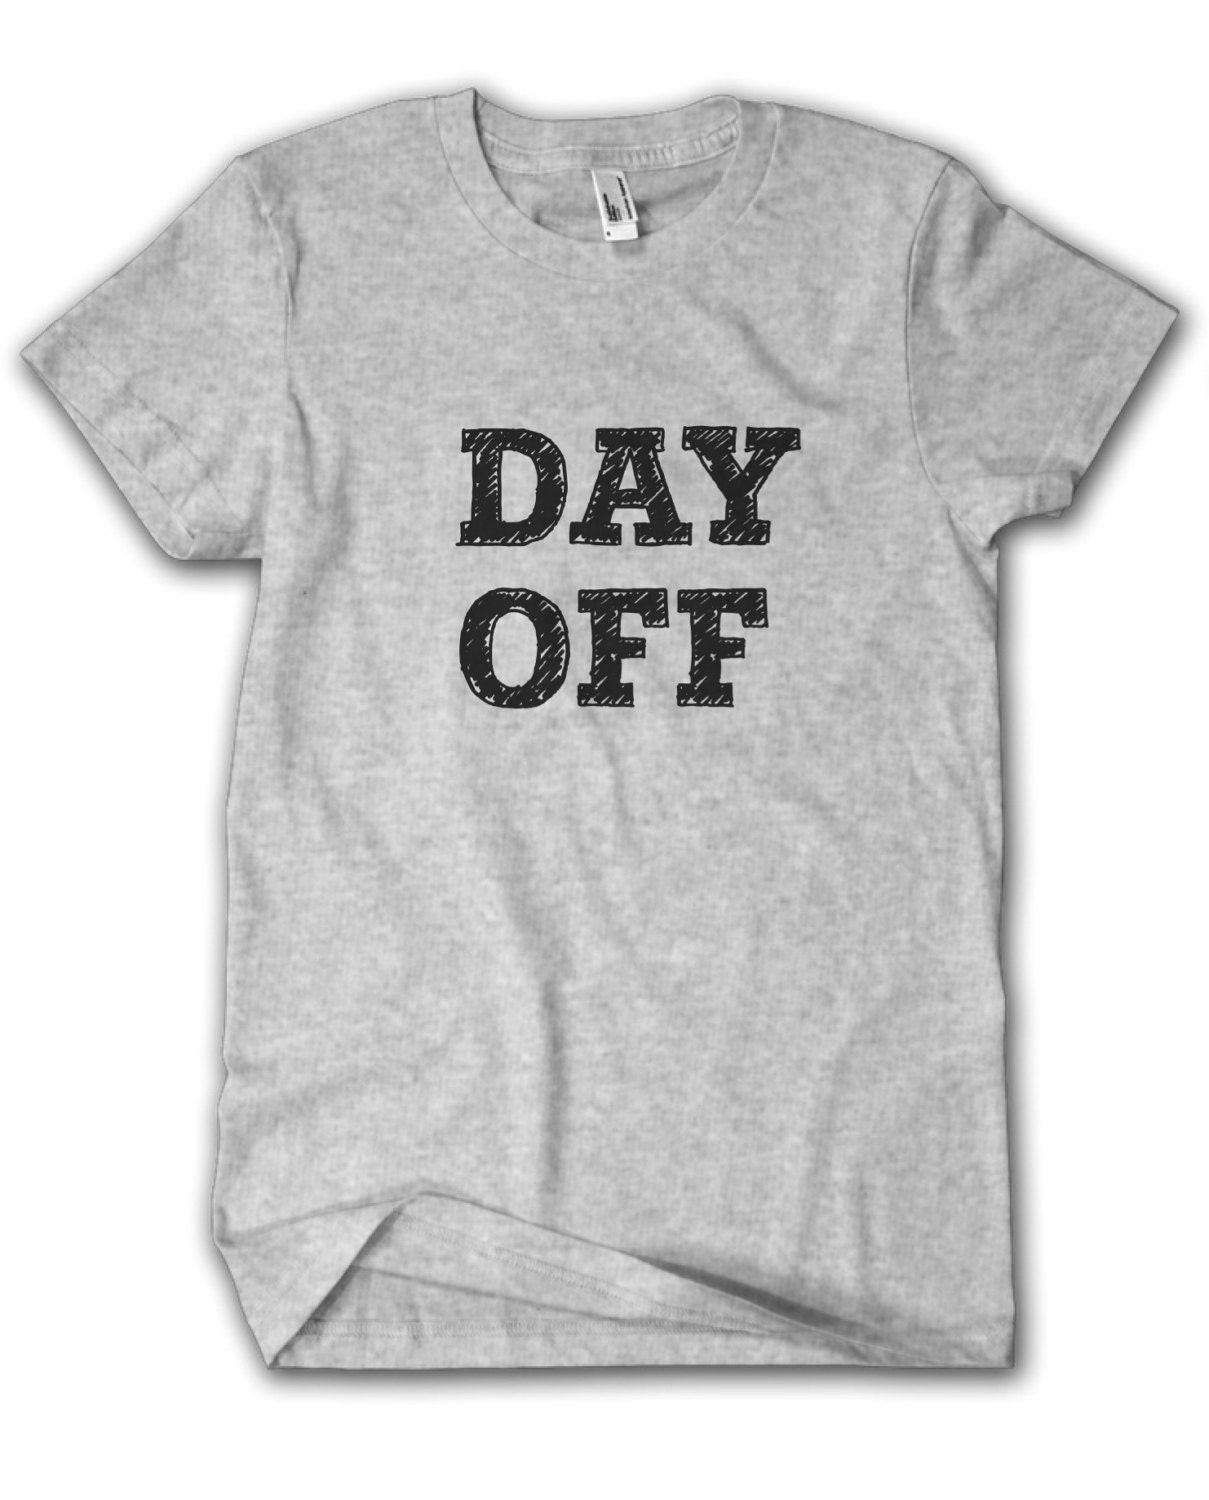 DAY OFF  Tshirt  SXXL Ladies tshirt Mens tshirt  Unisex tshirt  Cotton tshirt Slogan tshirt